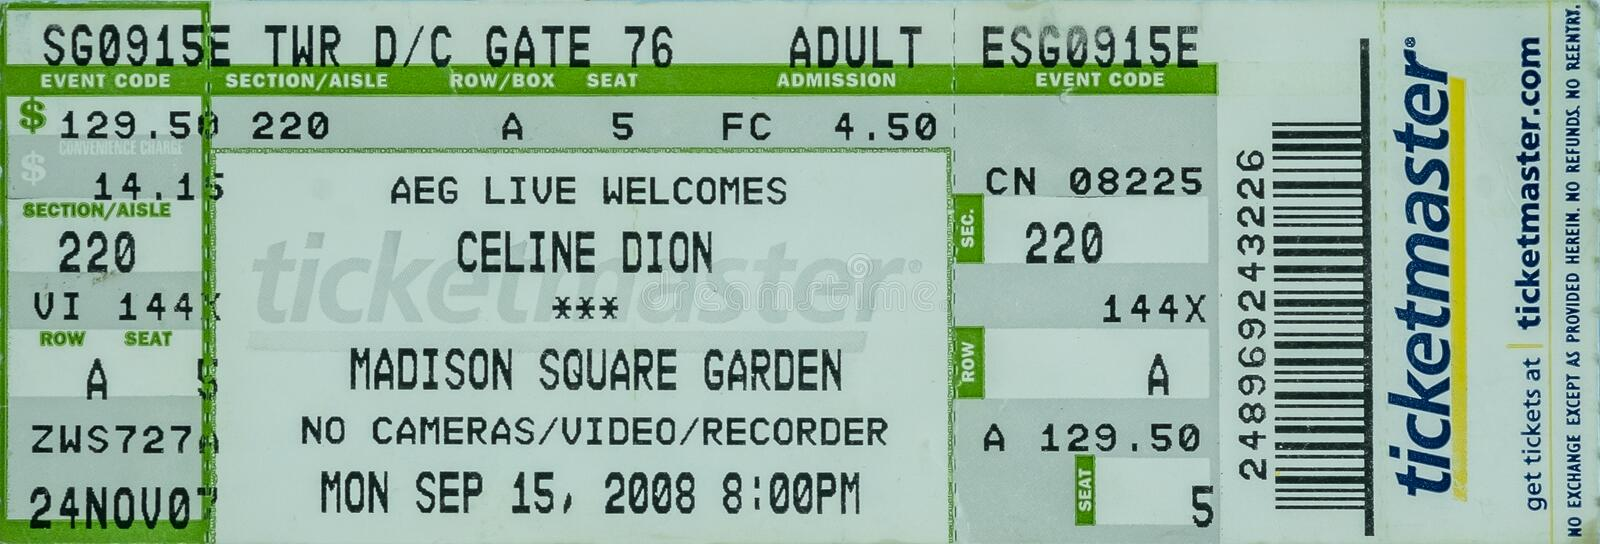 Celine Dion ticket Madison Square Garden royalty free stock image